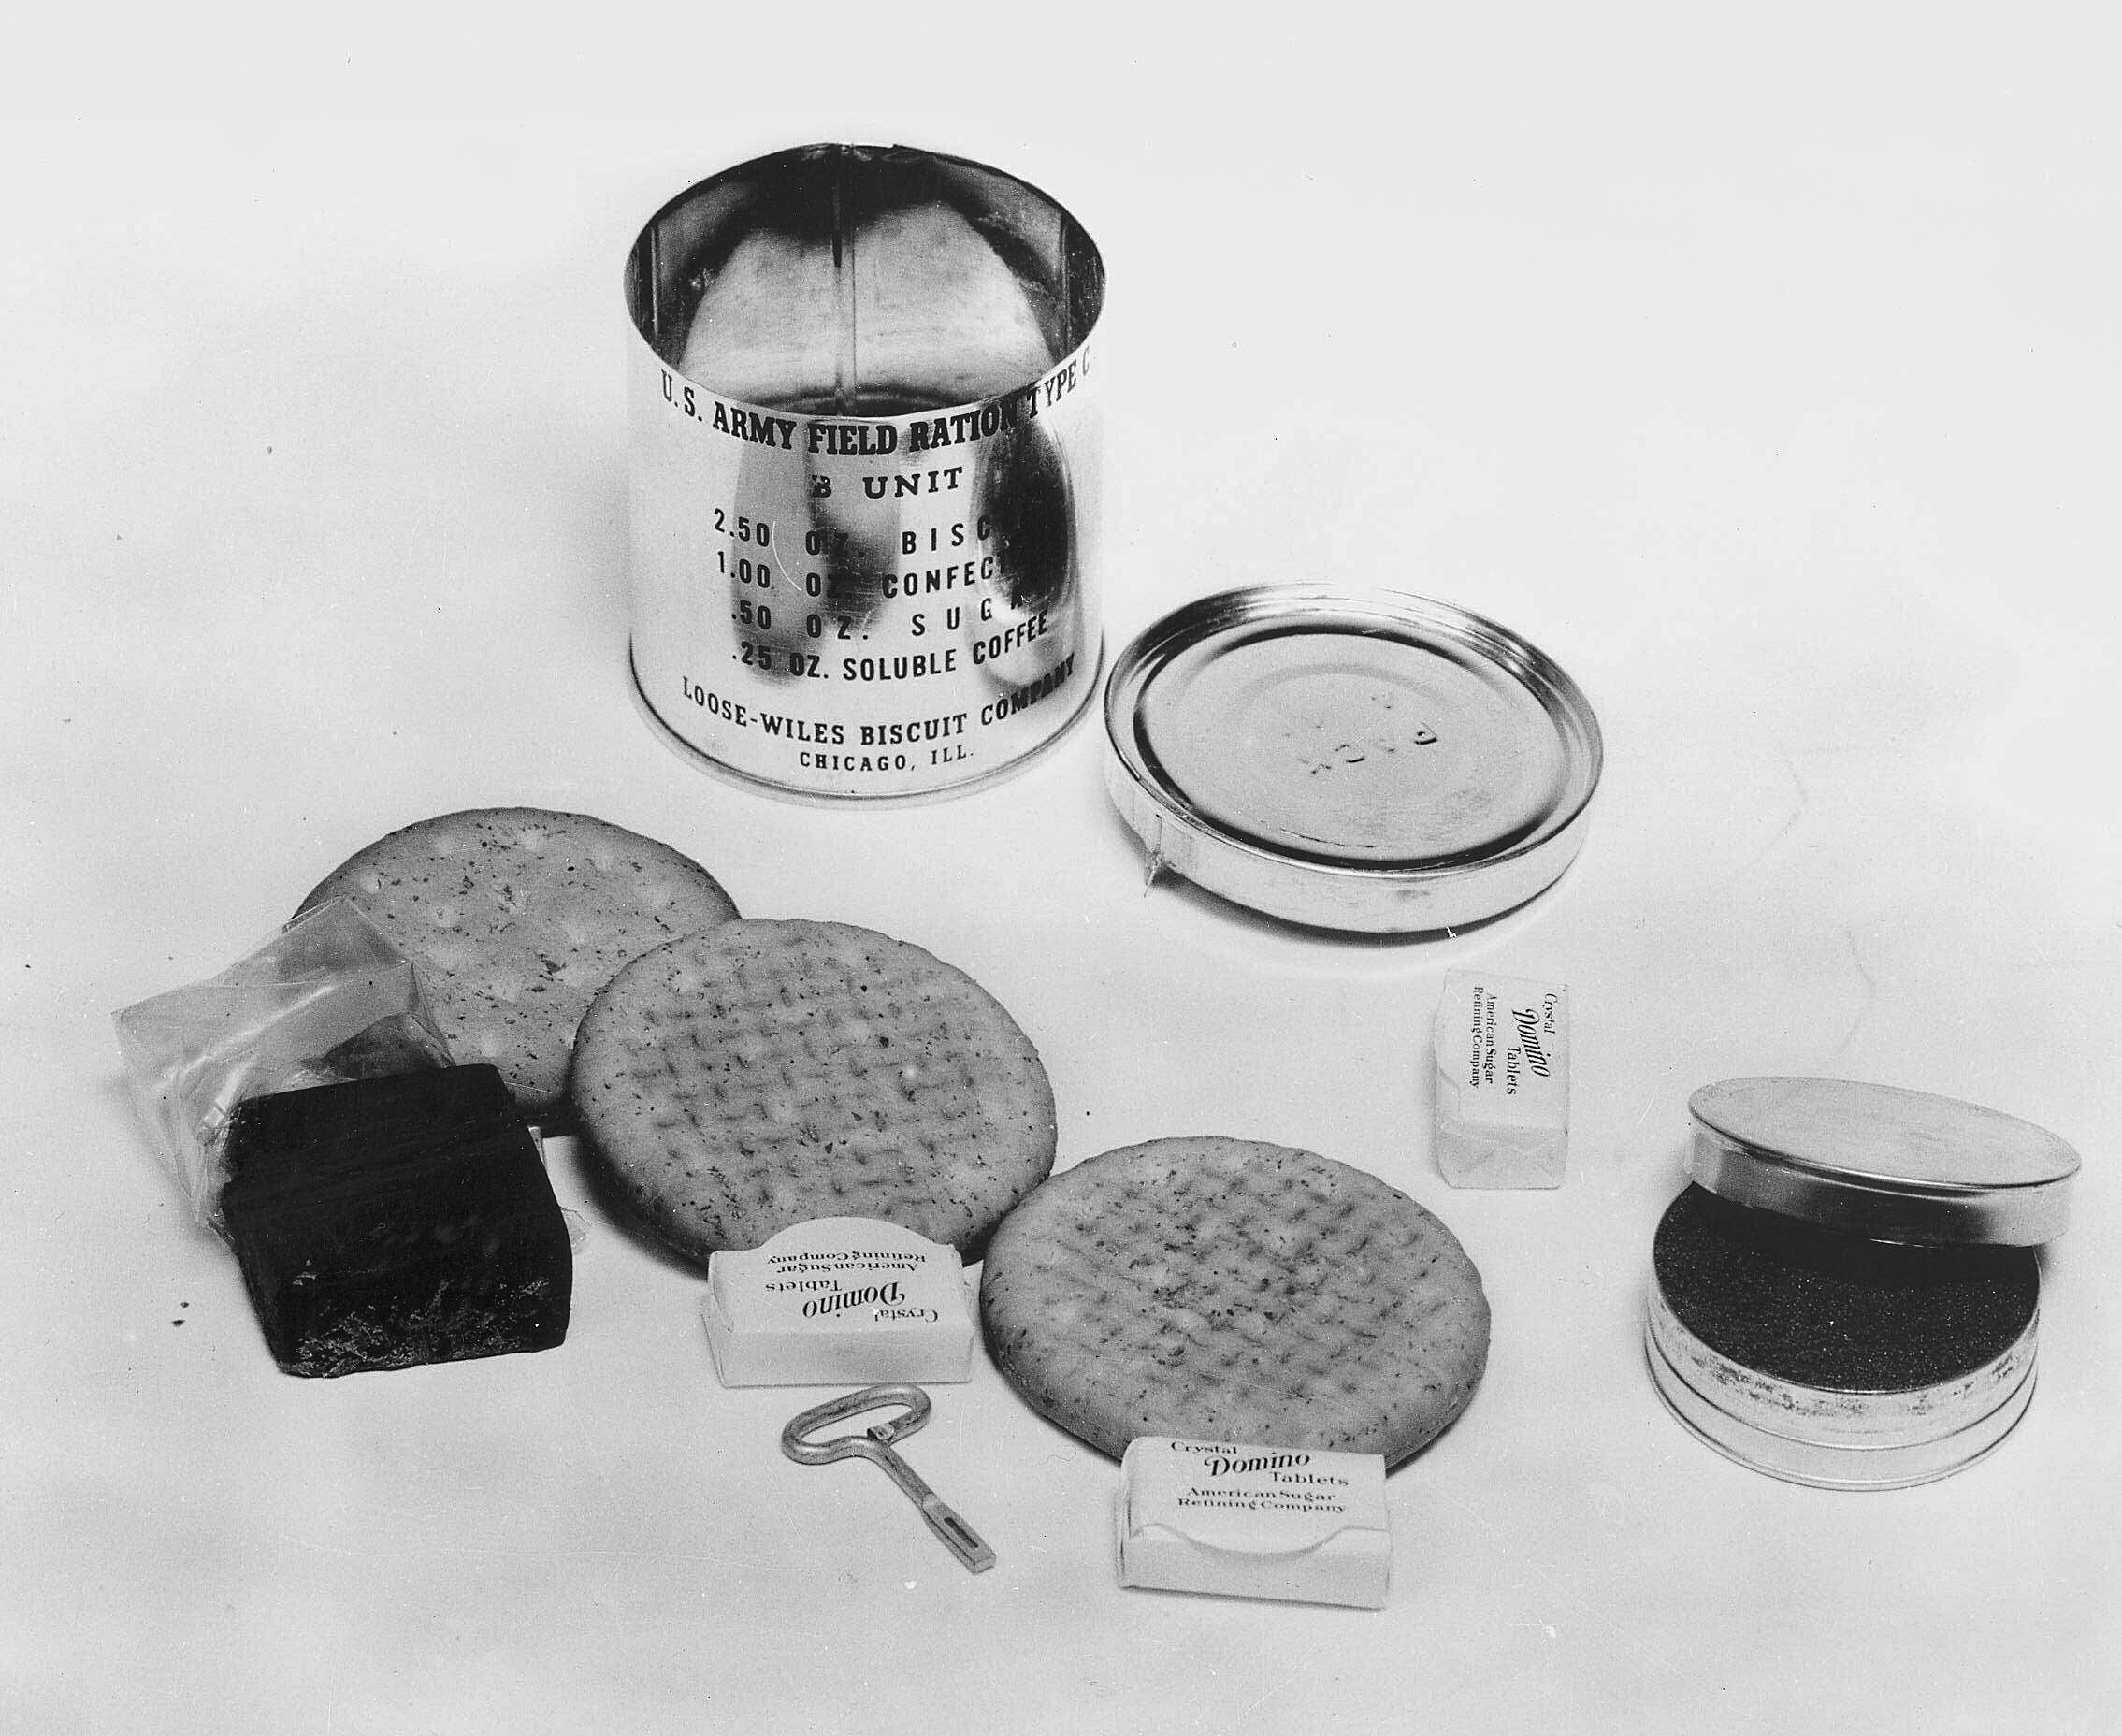 """A 1941 C Ration B unit, with contents: 3 biscuits, cellophane wrapped chocolate fudge, 3 pressed sugar cubes, and a small tin of soluble (instant) coffee. Can label indicates contents and supplier: """"2.50 oz Biscuit, 1.00 oz Confection, .50 oz Sugar, .25 oz Soluble Coffee Loose-Wiles Biscuit Company, Chicago Ill."""" United States Army, 1941"""